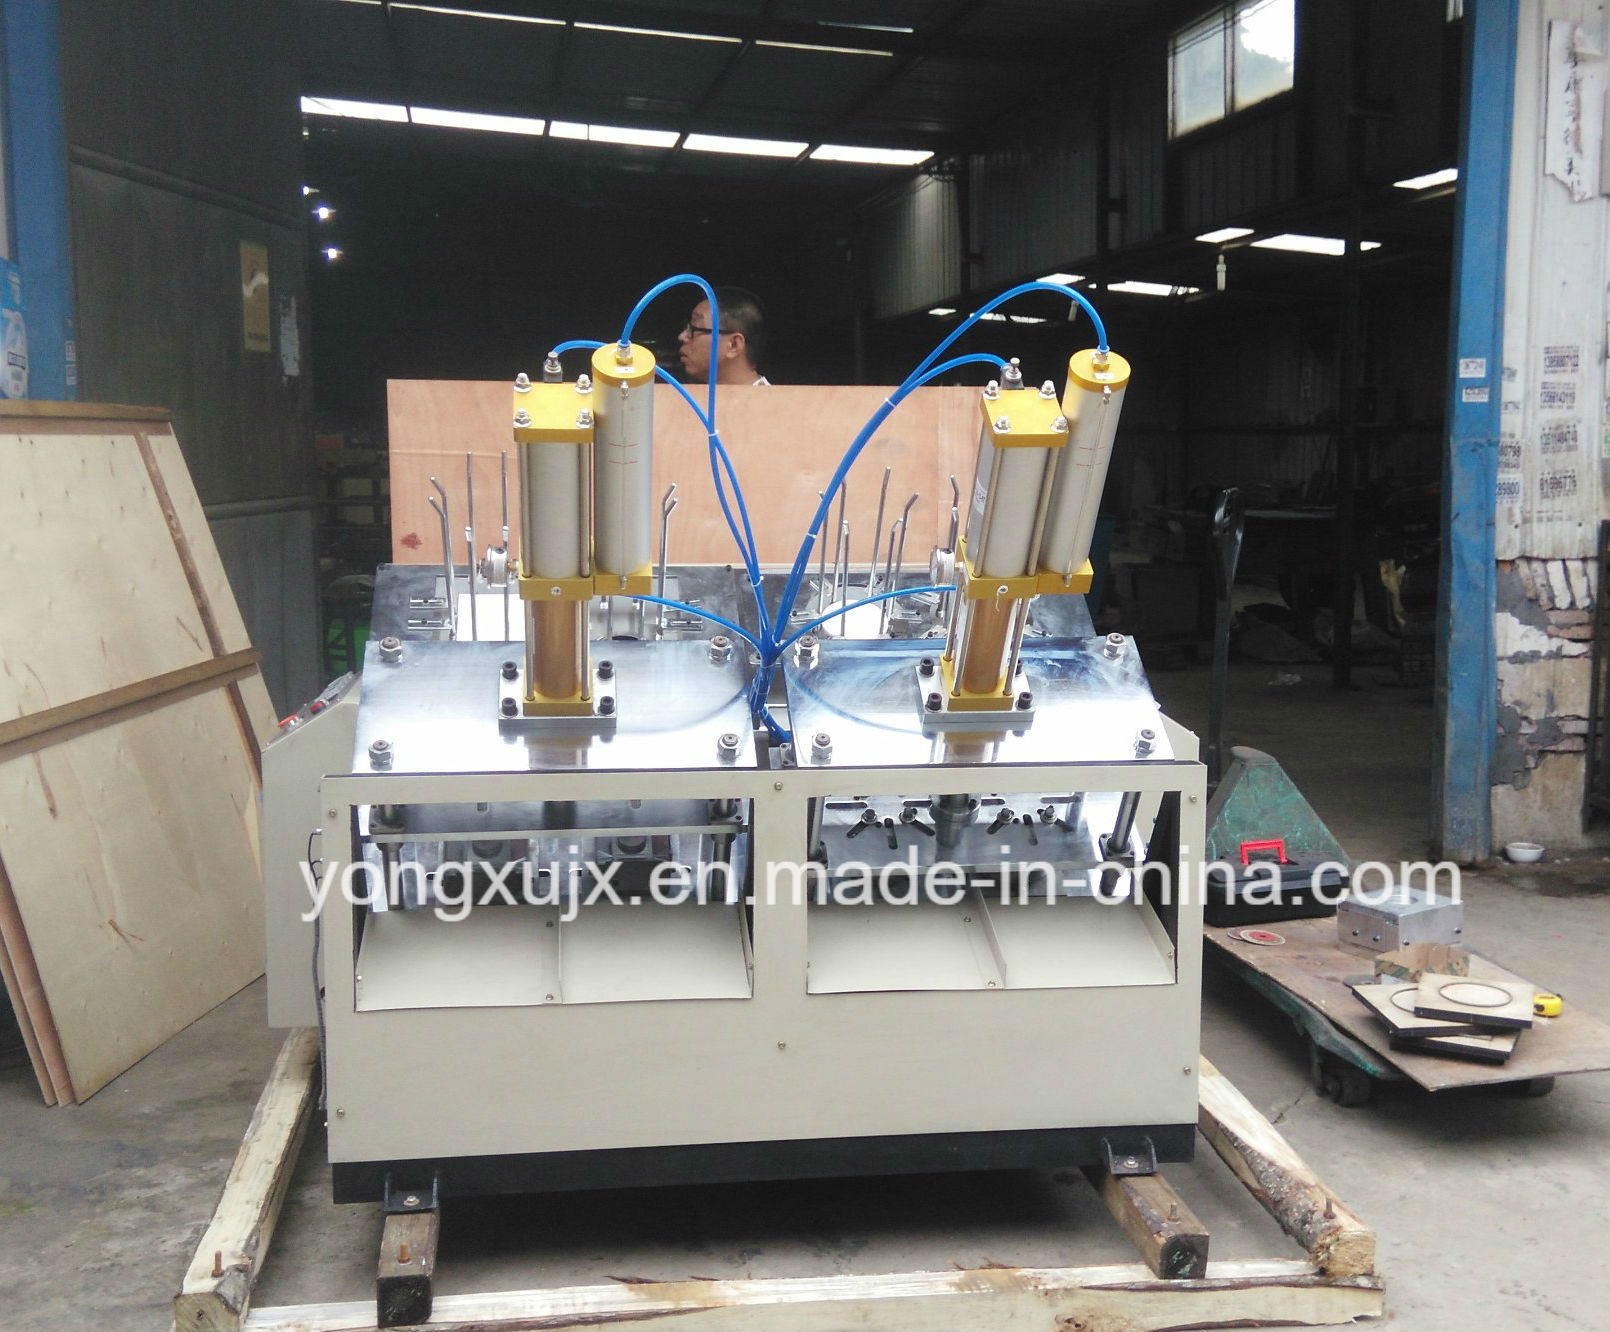 120-150PCS/Min Paper Plate Making Machine, High Speed Paper Dish Machine, Paper Plate Machine